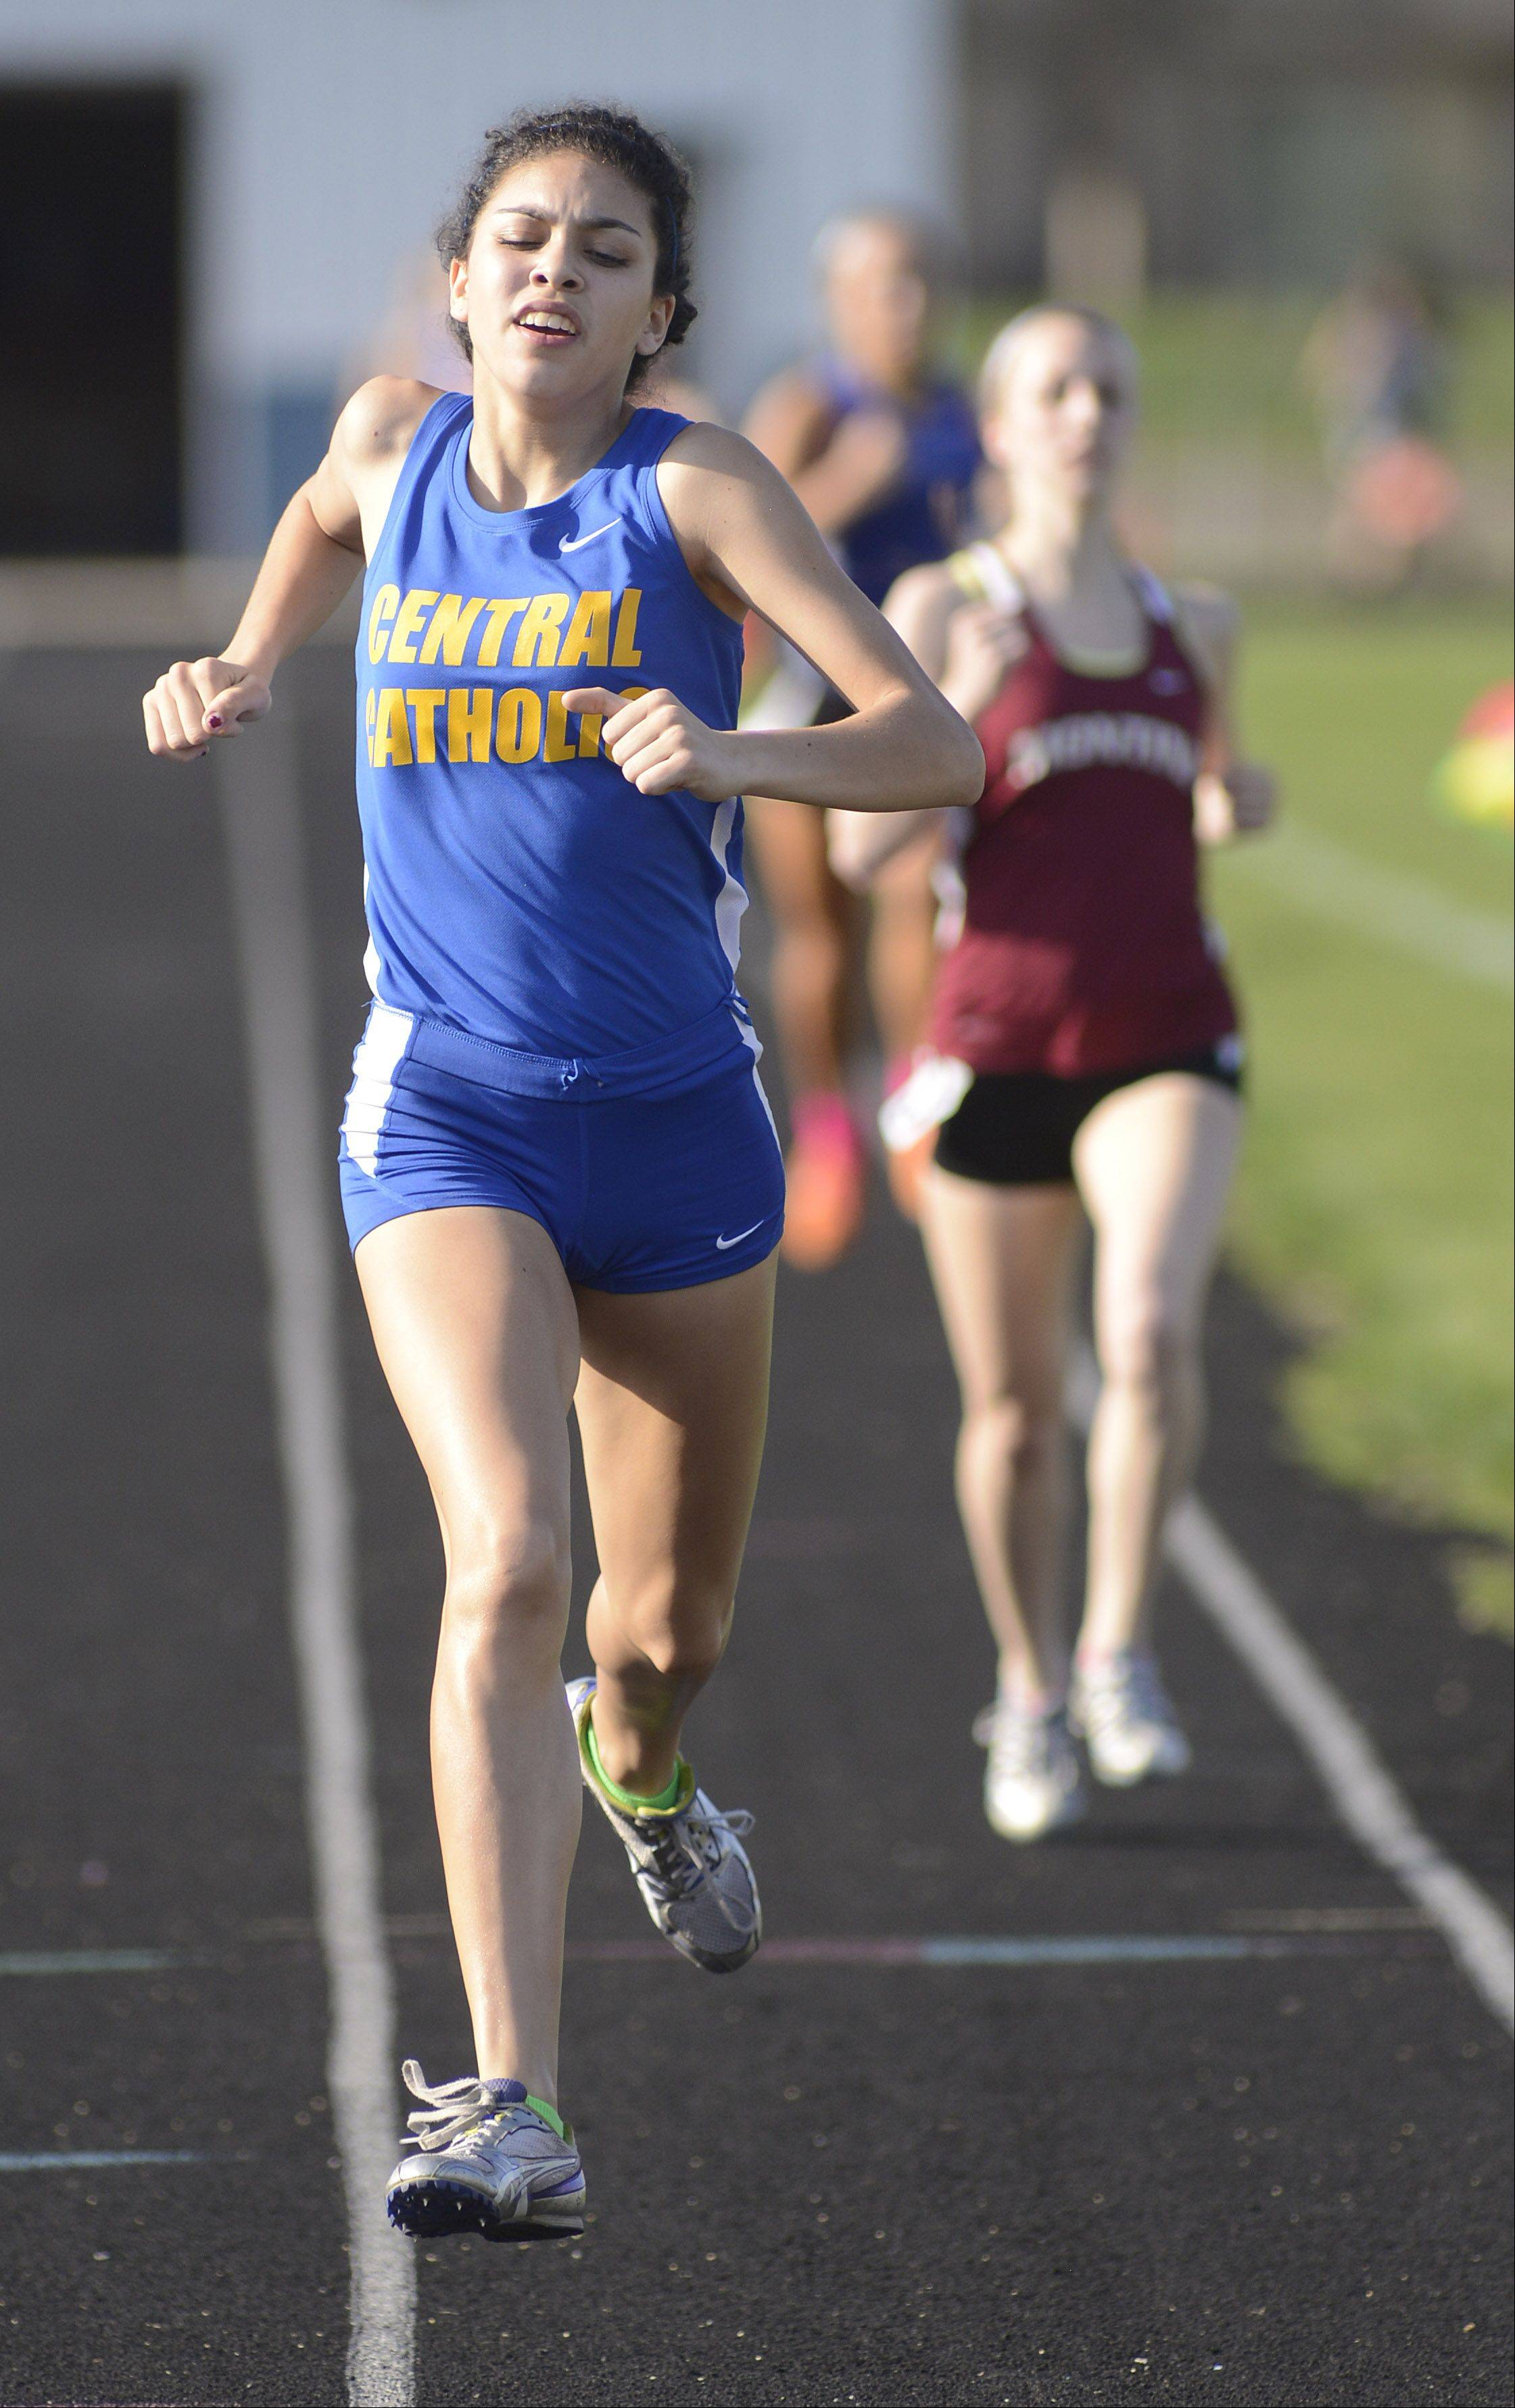 Aurora Central Catholic's Karina Liz takes first place in the second heat of the 800 meter run at the Suburban Christian Conference on Wednesday, May 1.